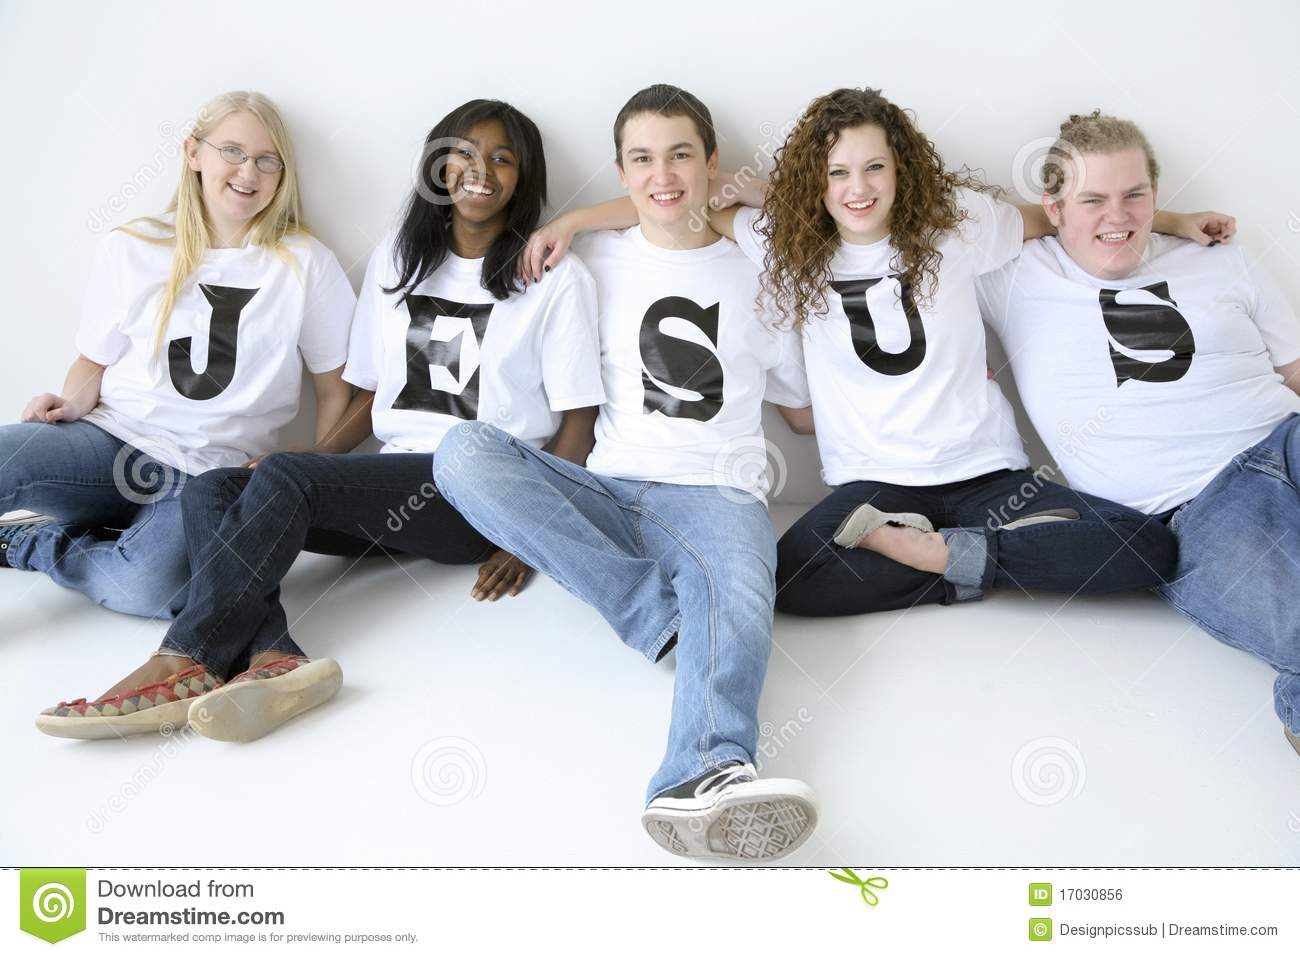 Stock Fotos E Imágenes: Five Teenagers Stock Photo. Image Of Community, Jeans